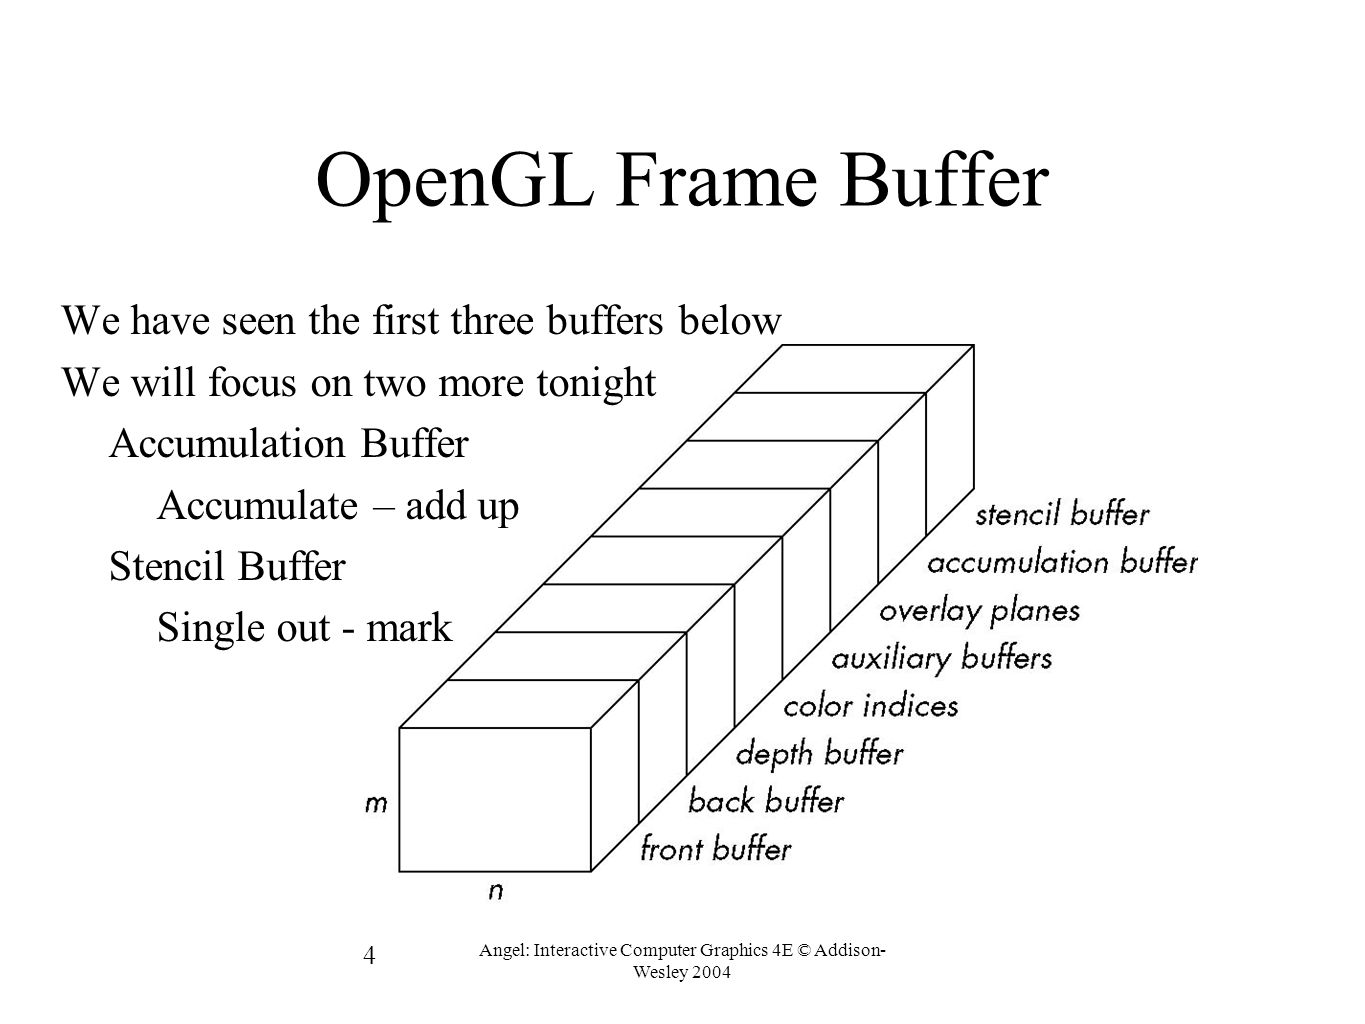 4 Angel: Interactive Computer Graphics 4E © Addison- Wesley 2004 OpenGL Frame Buffer We have seen the first three buffers below We will focus on two m